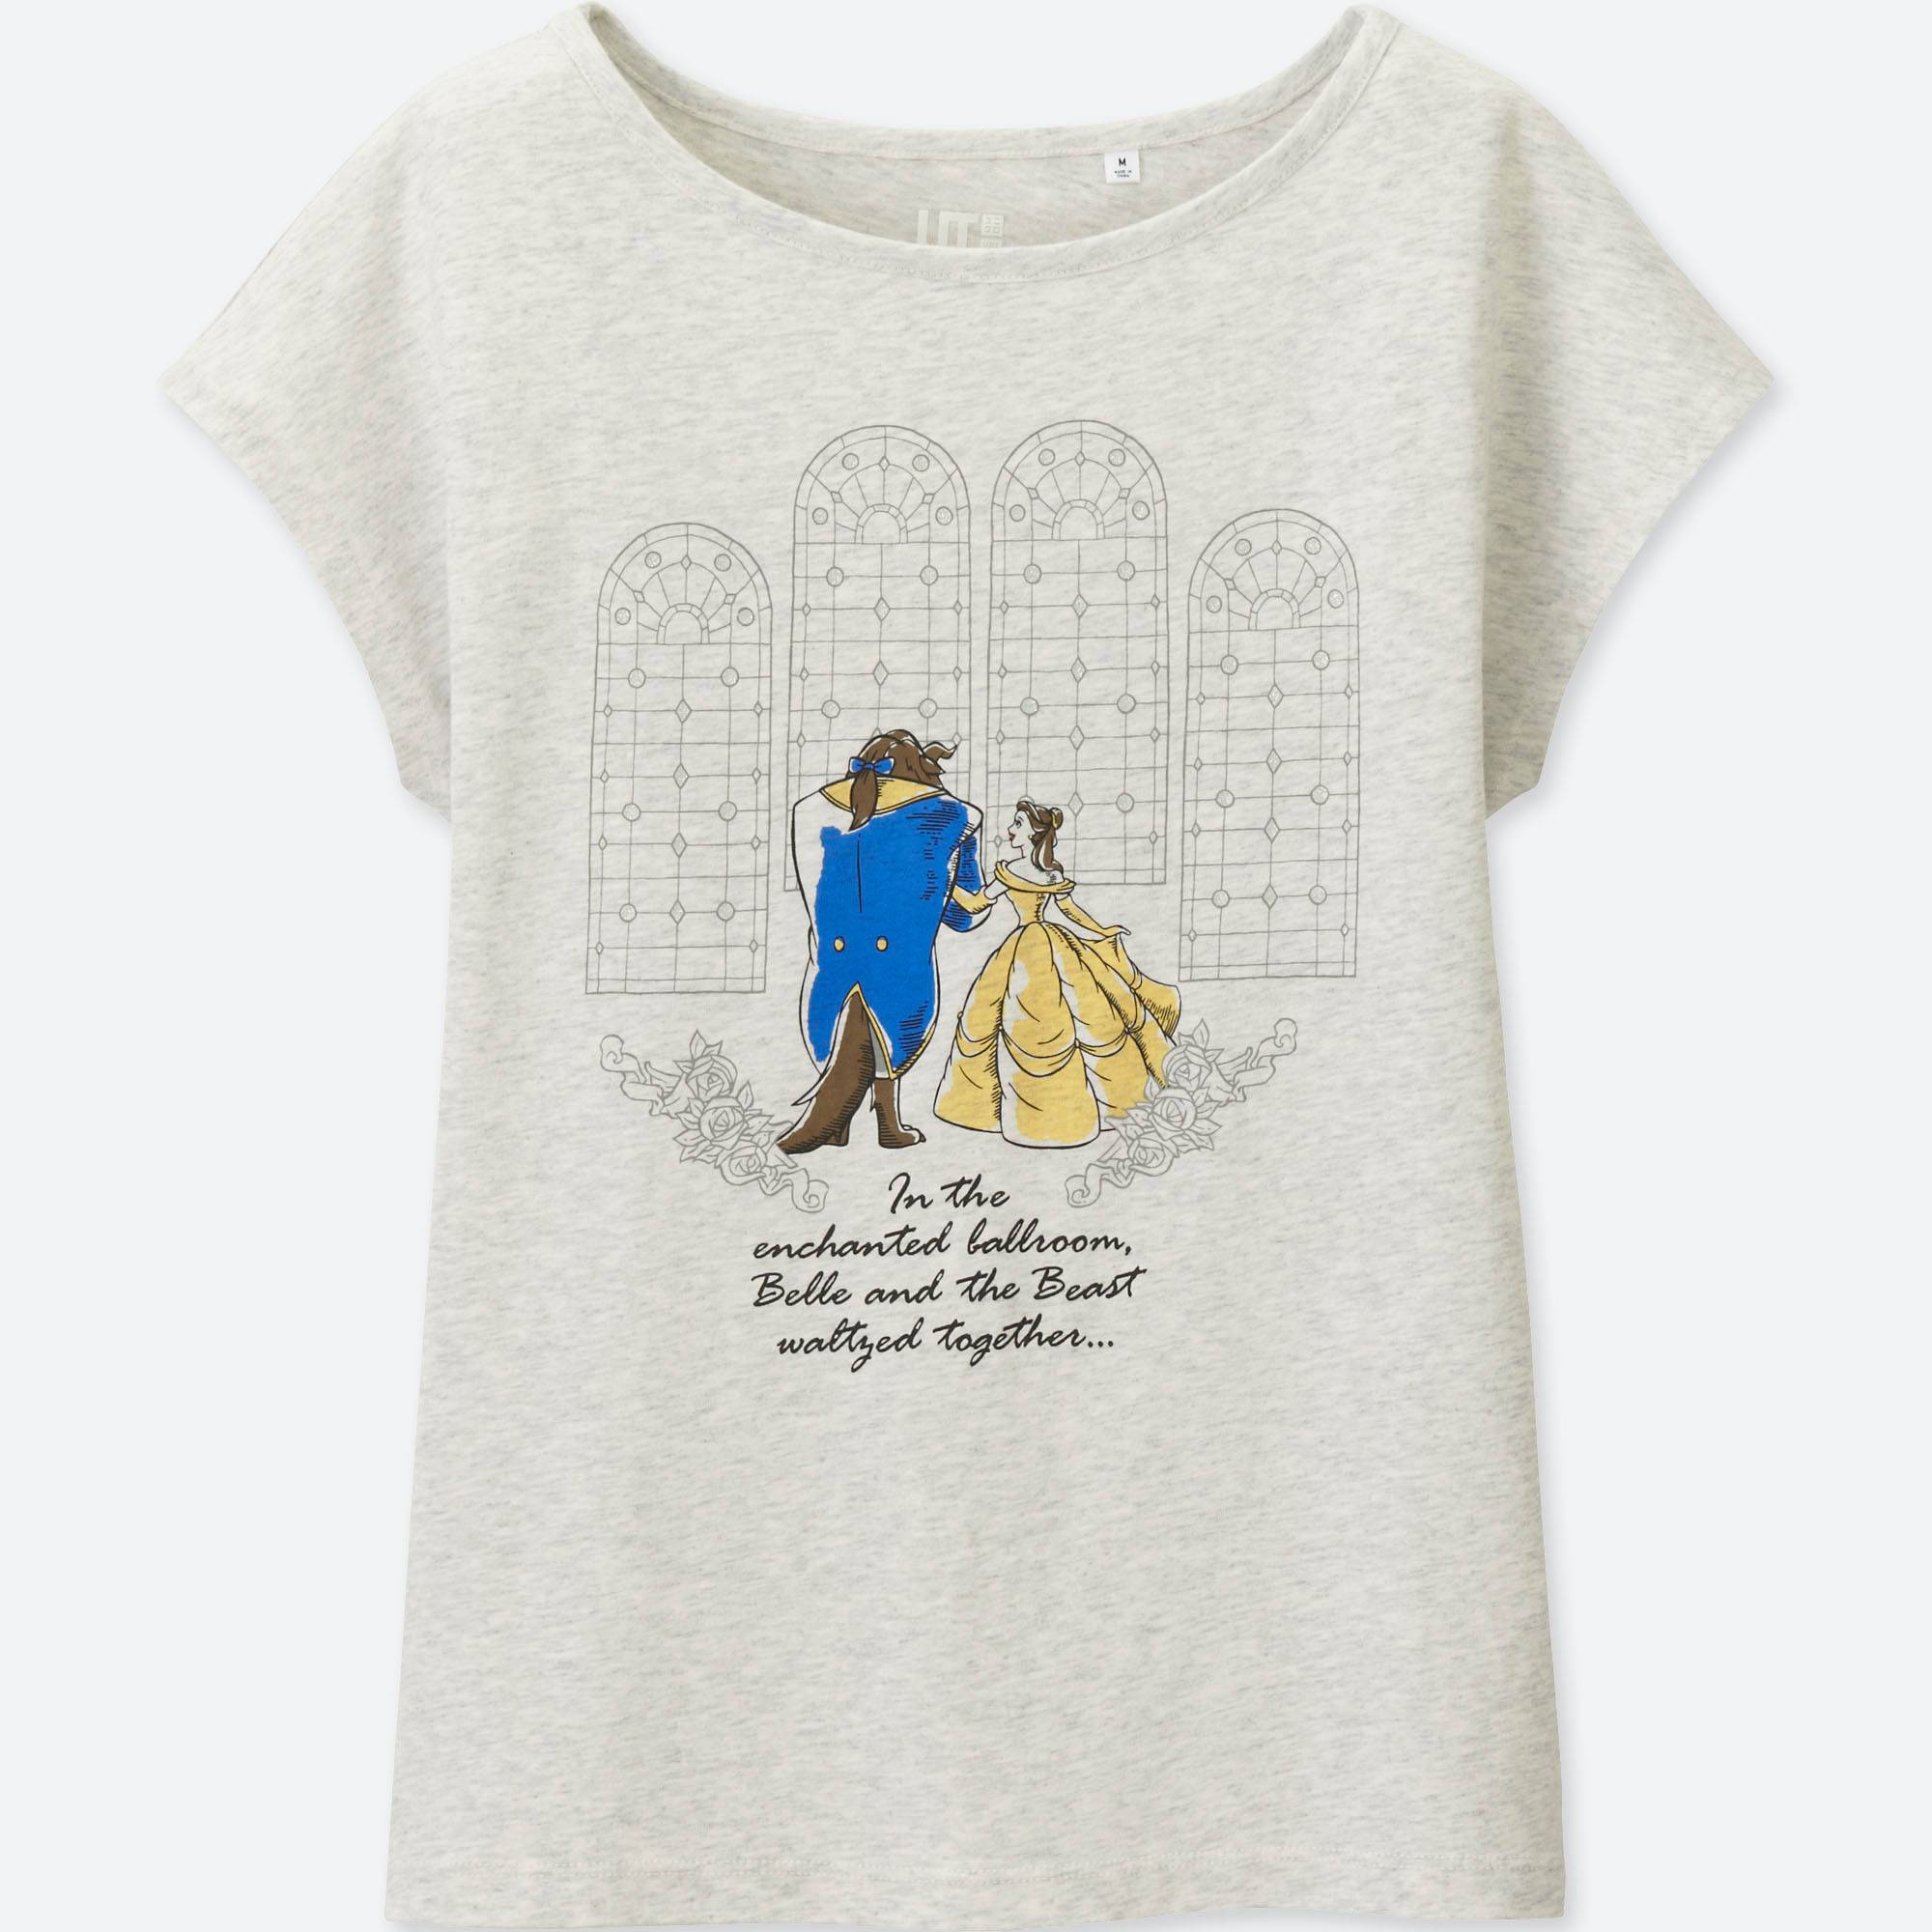 WOMEN Disney 'Beauty and the Beast' SHORT SLEEVE GRAPHIC T-SHIRT